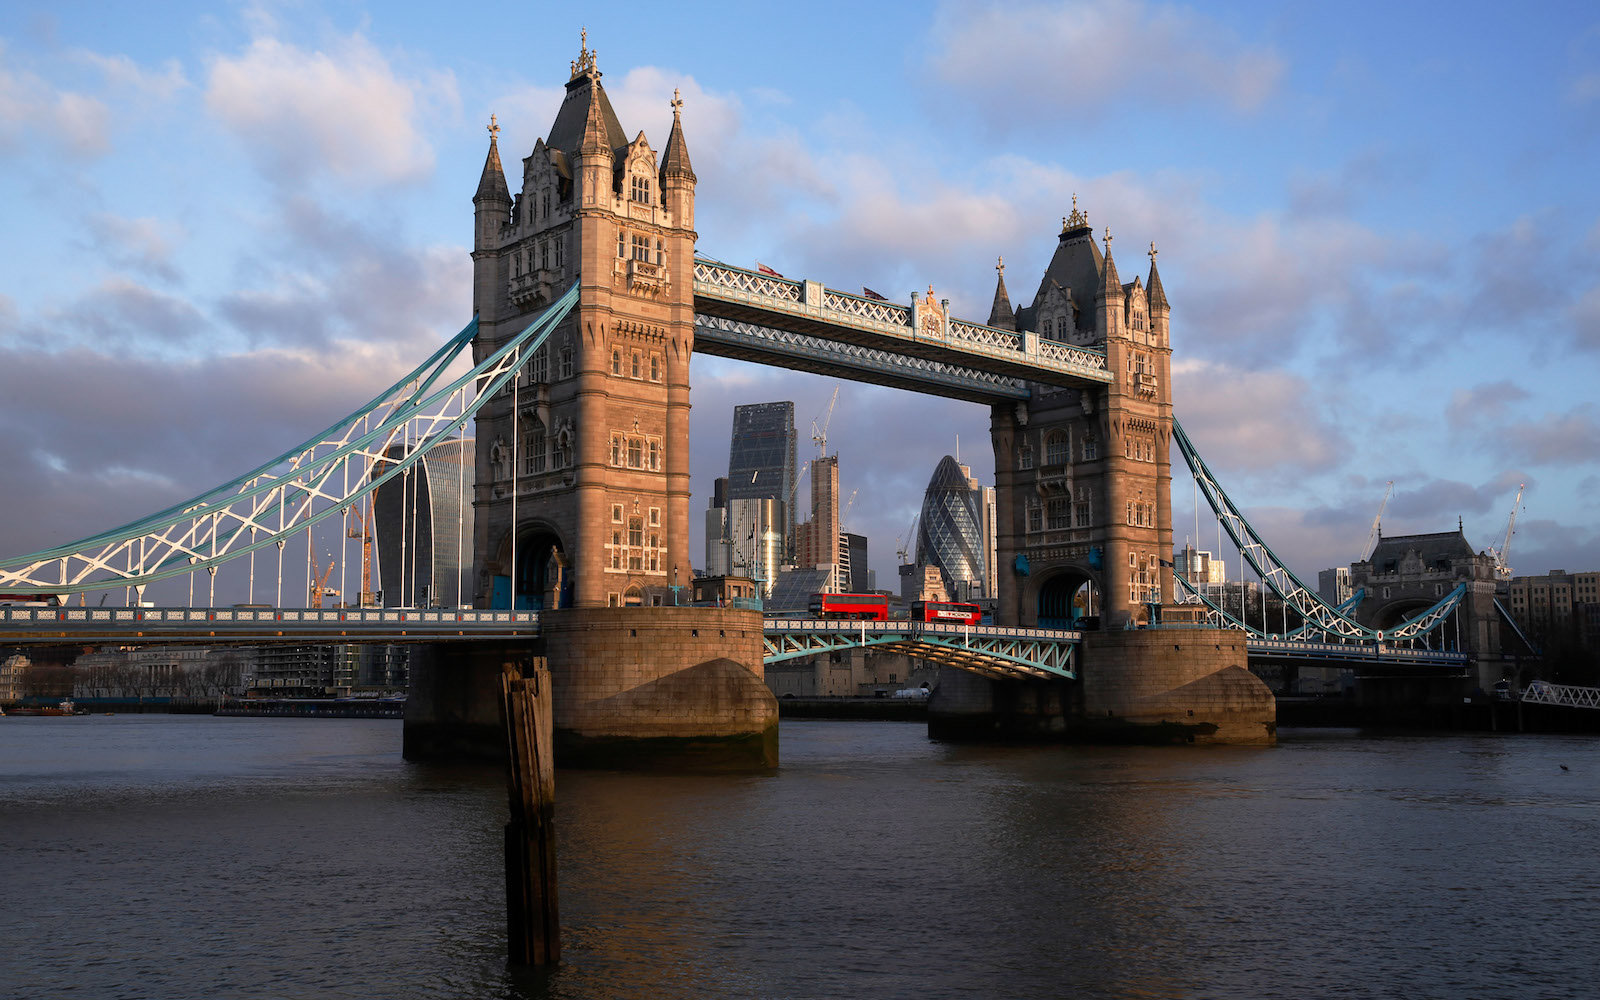 $199 Flights to London Are Coming to the West Coast